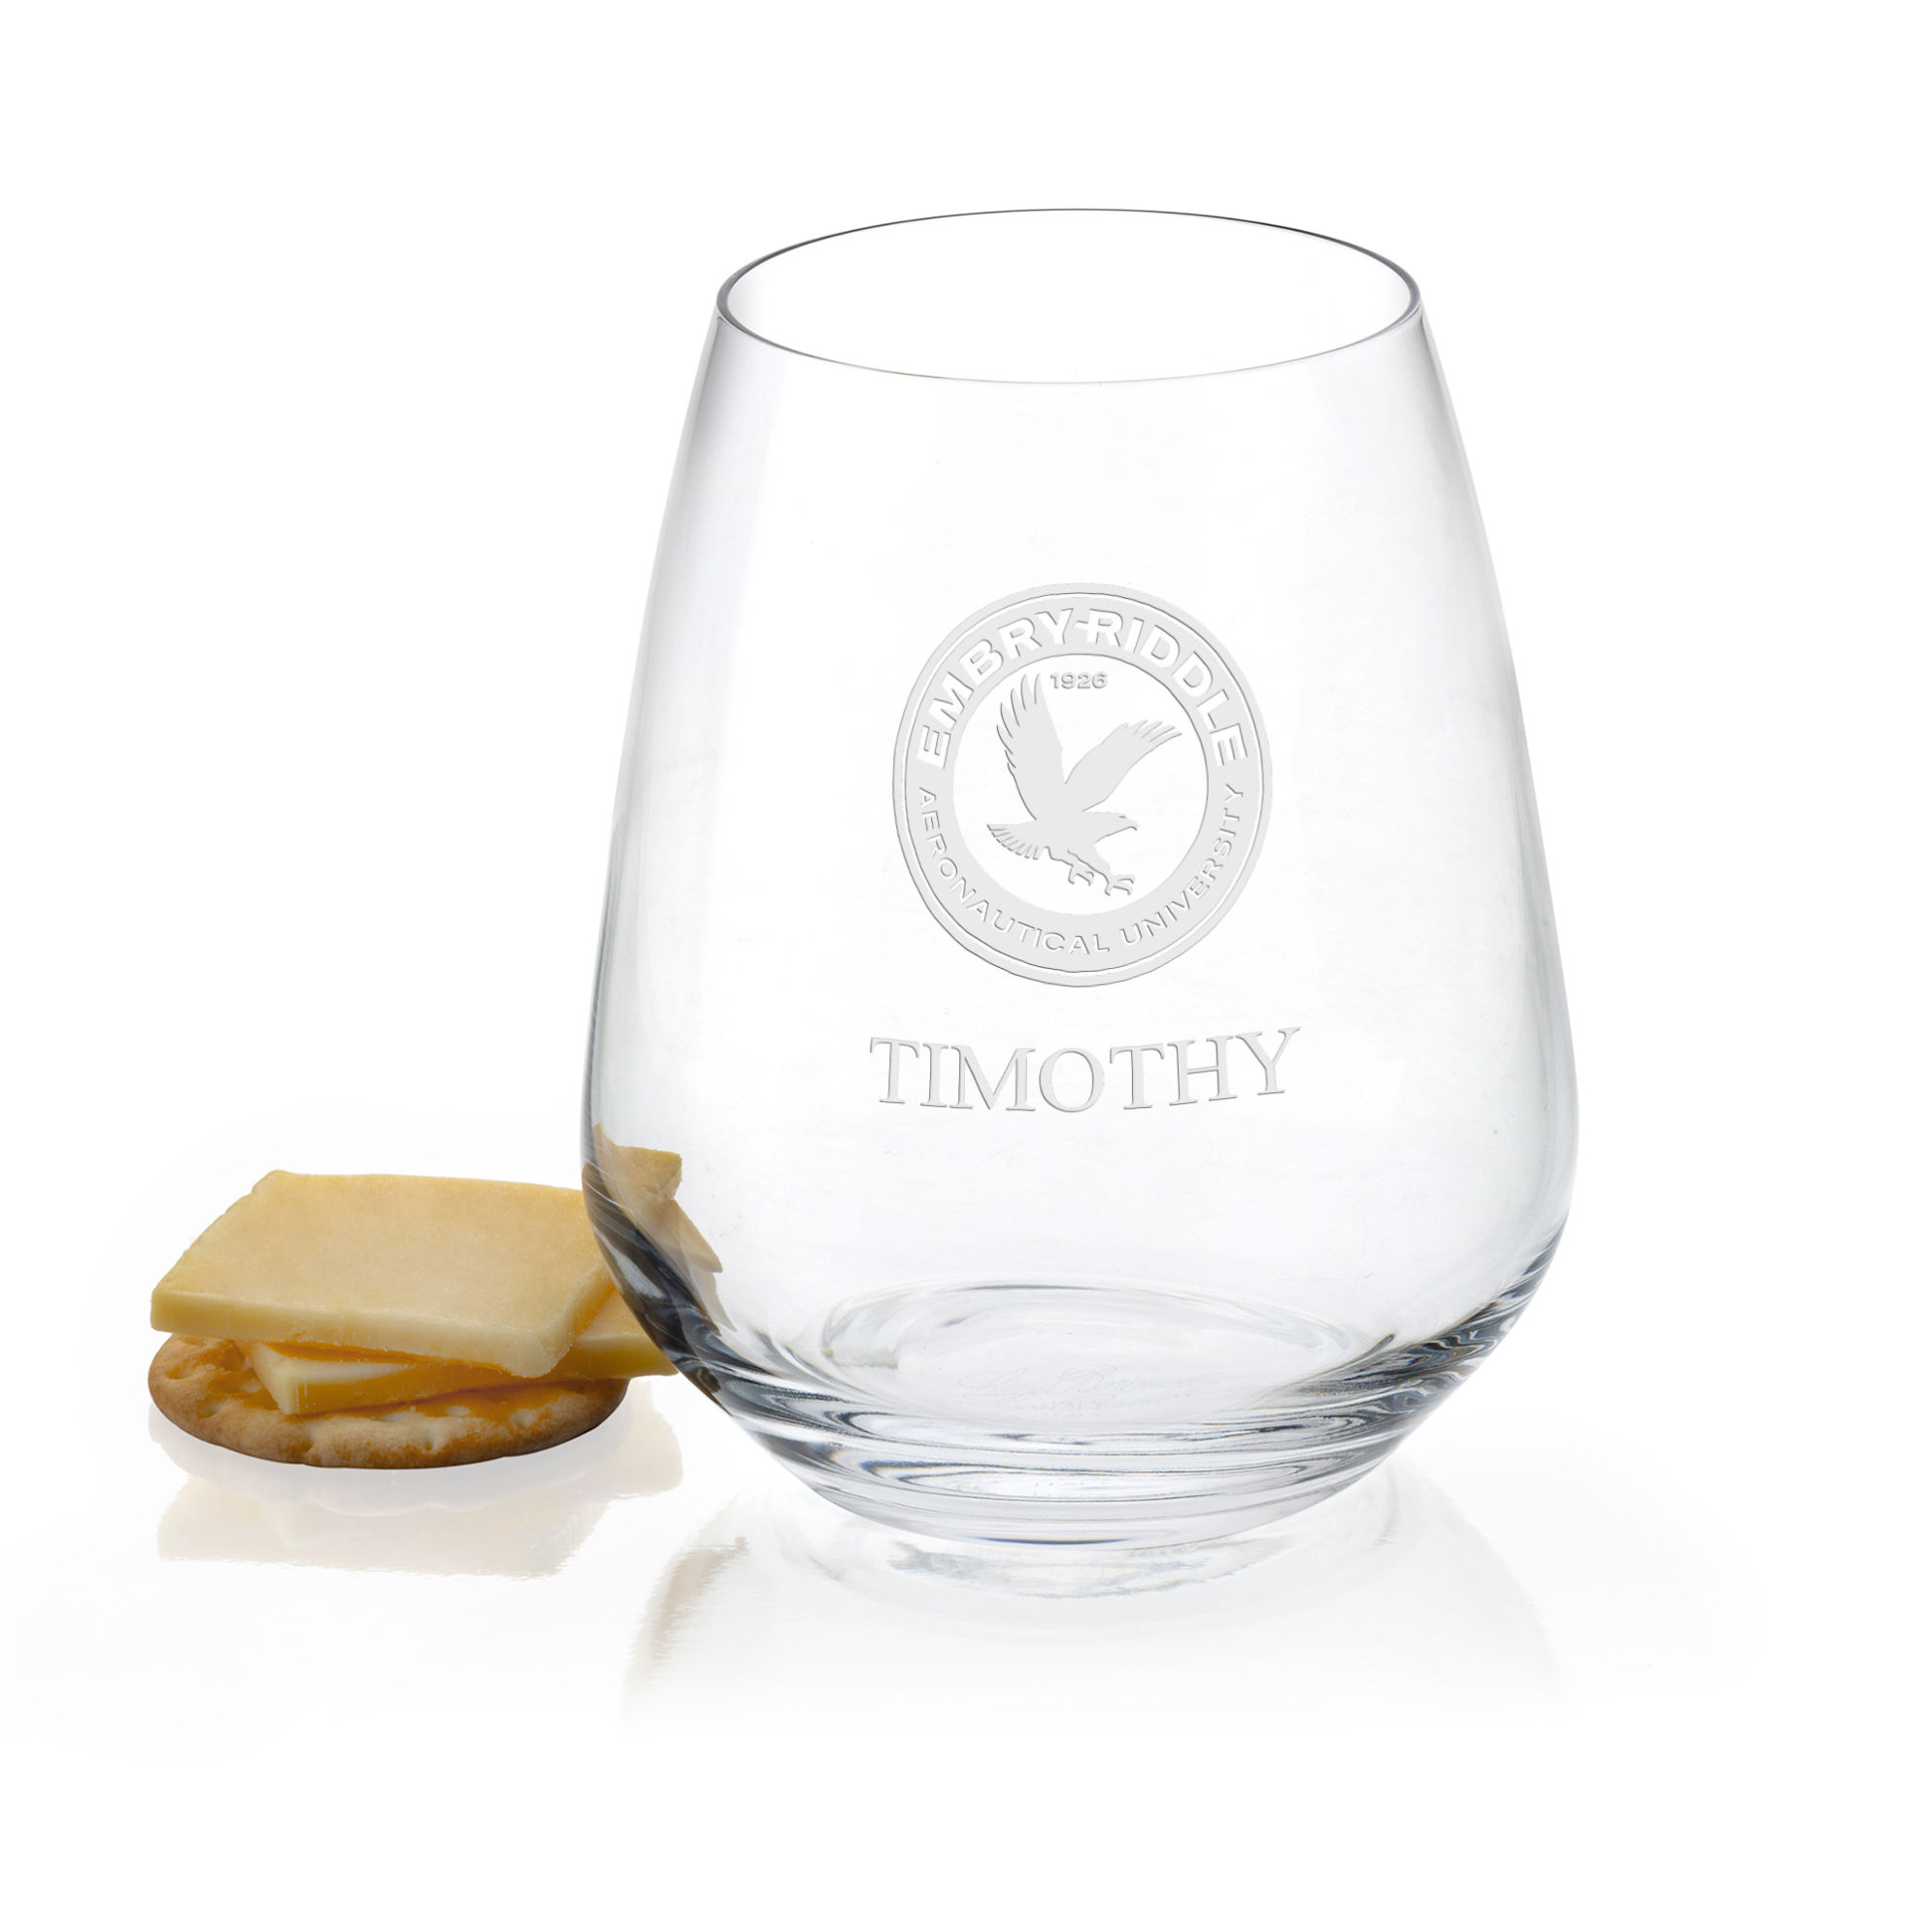 Embry-Riddle Stemless Wine Glasses - Set of 2